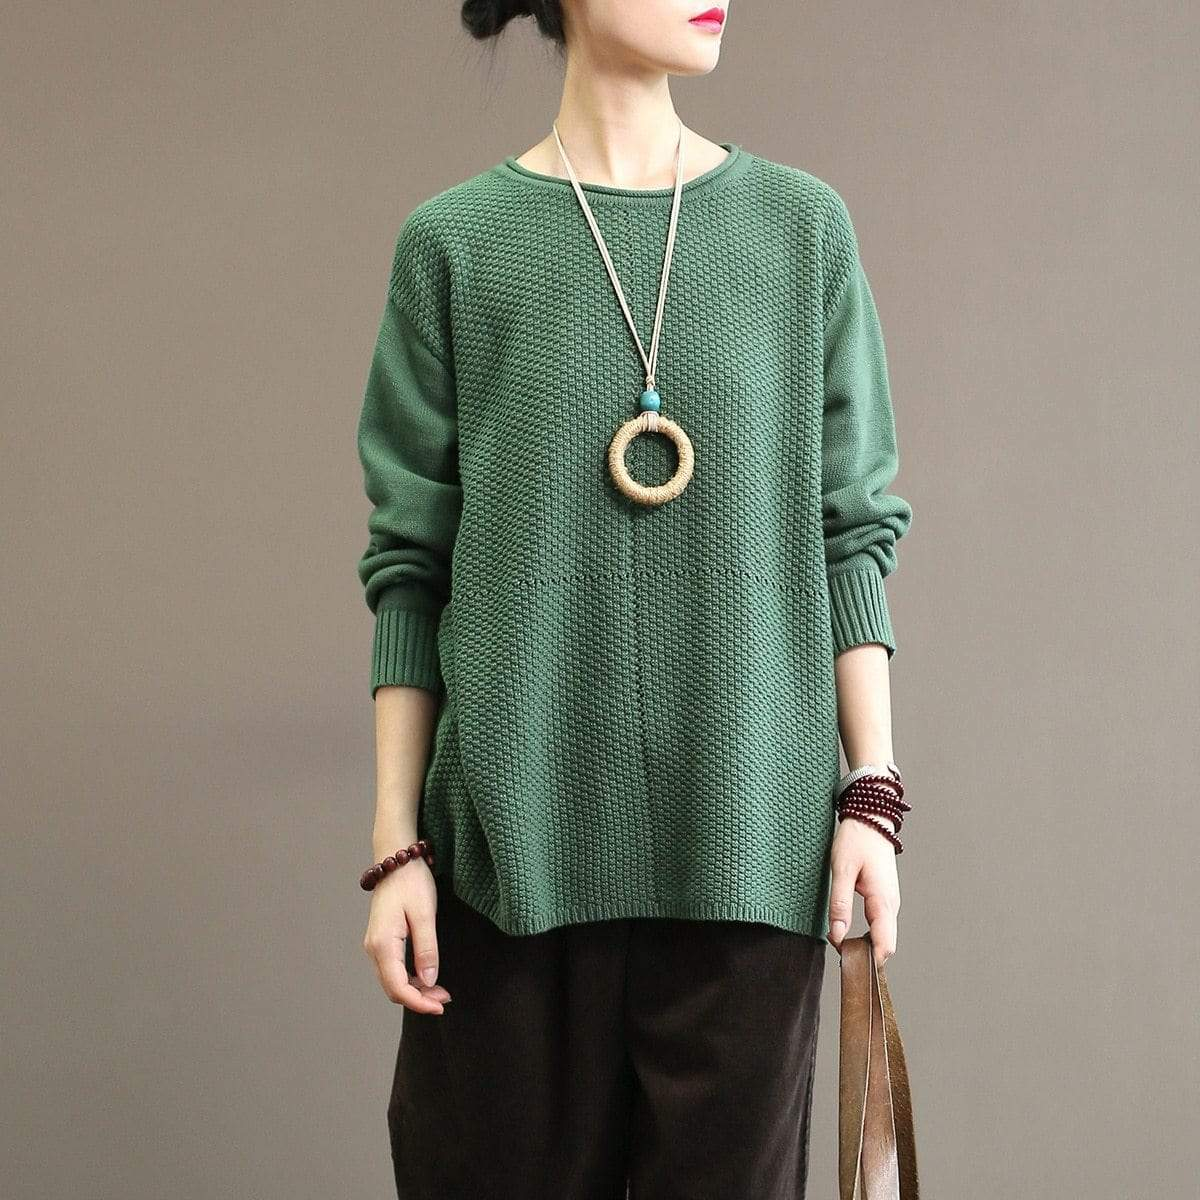 Buddhatrends Dark green / One Size Basic Knitted Sweater